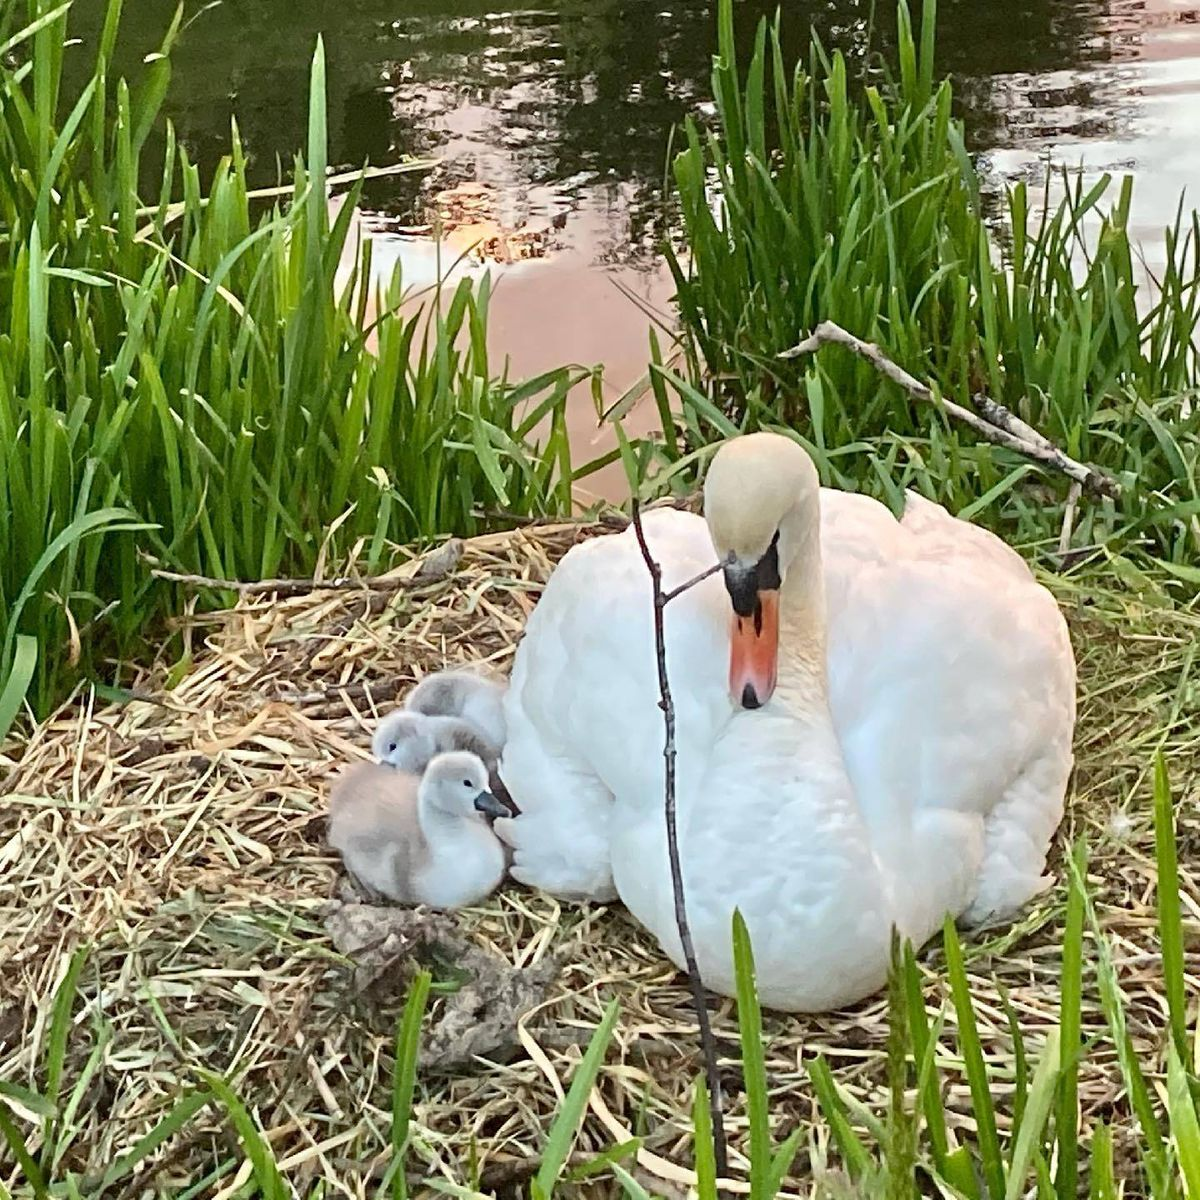 Beatrice and three of her cygnets